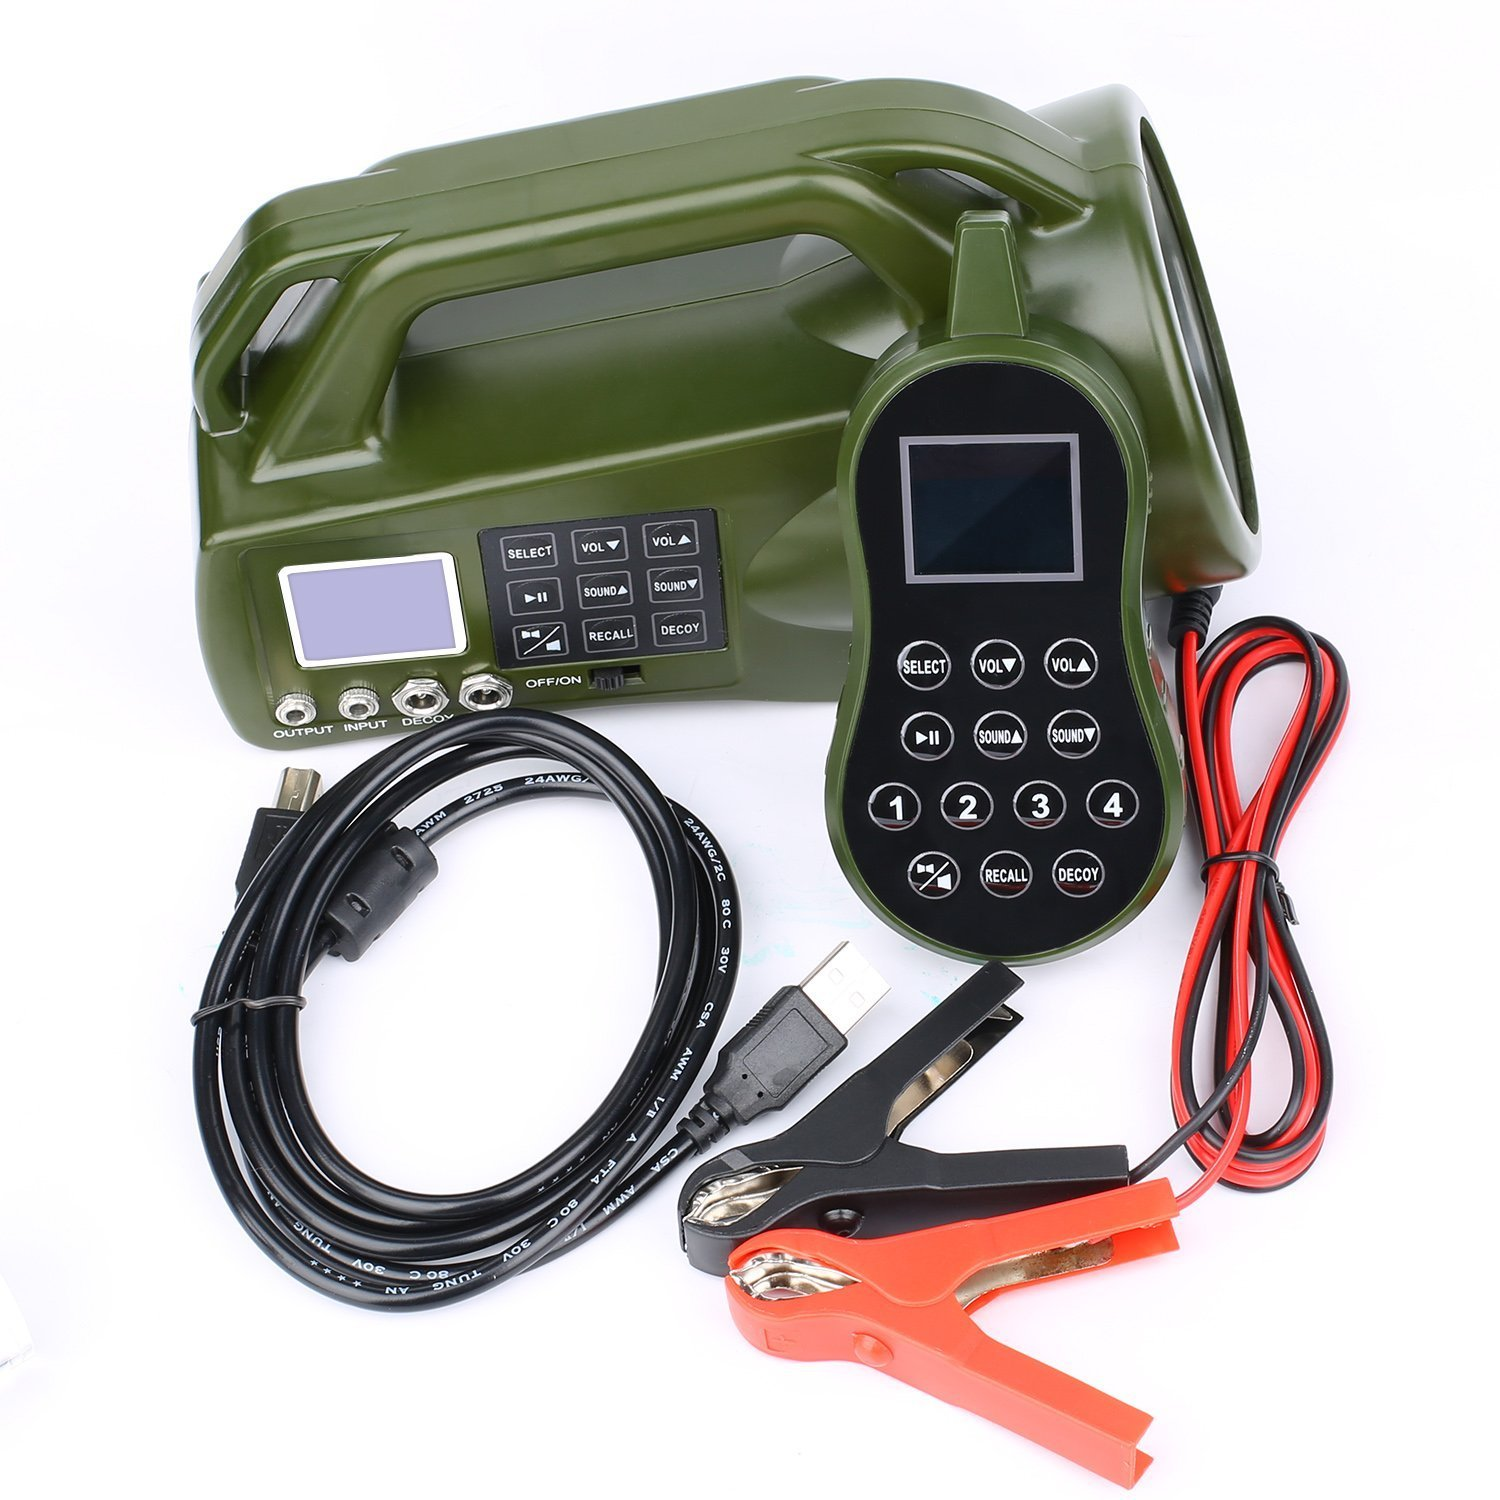 HKCYSEA Hunting Bait Caller 400 Songs Outdoor MP3 Player LCD Screen Loud Speaker With Wireless Remote Control Wildlife Decoy Game Predator by HKCYSEA (Image #8)